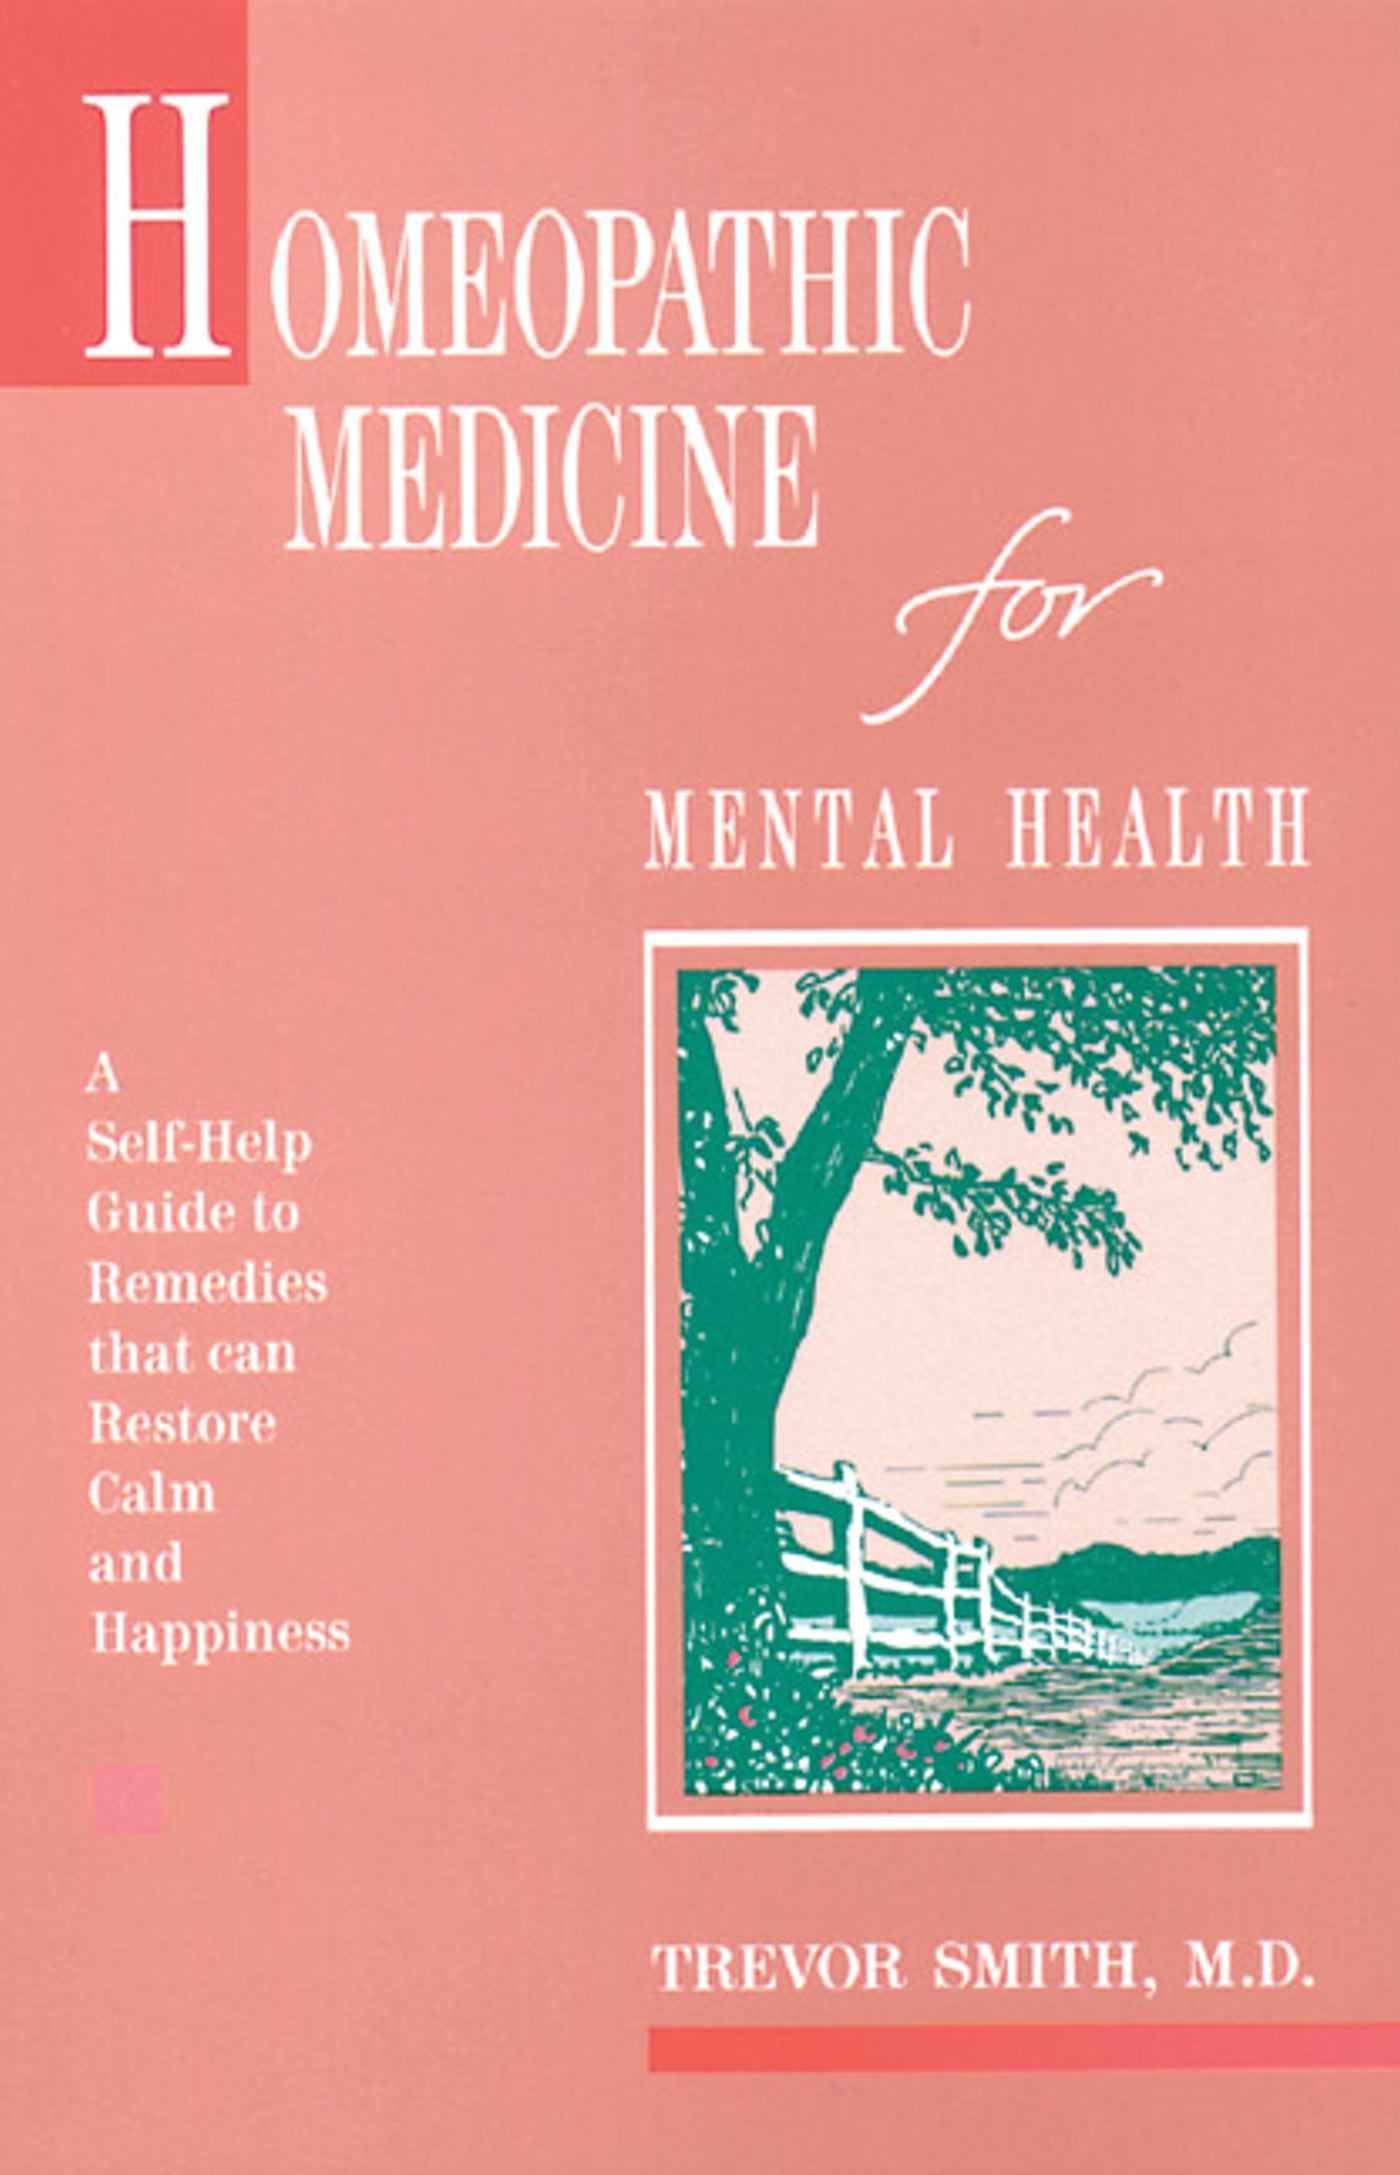 Homeopathic medicine for mental health 9780892812912 hr